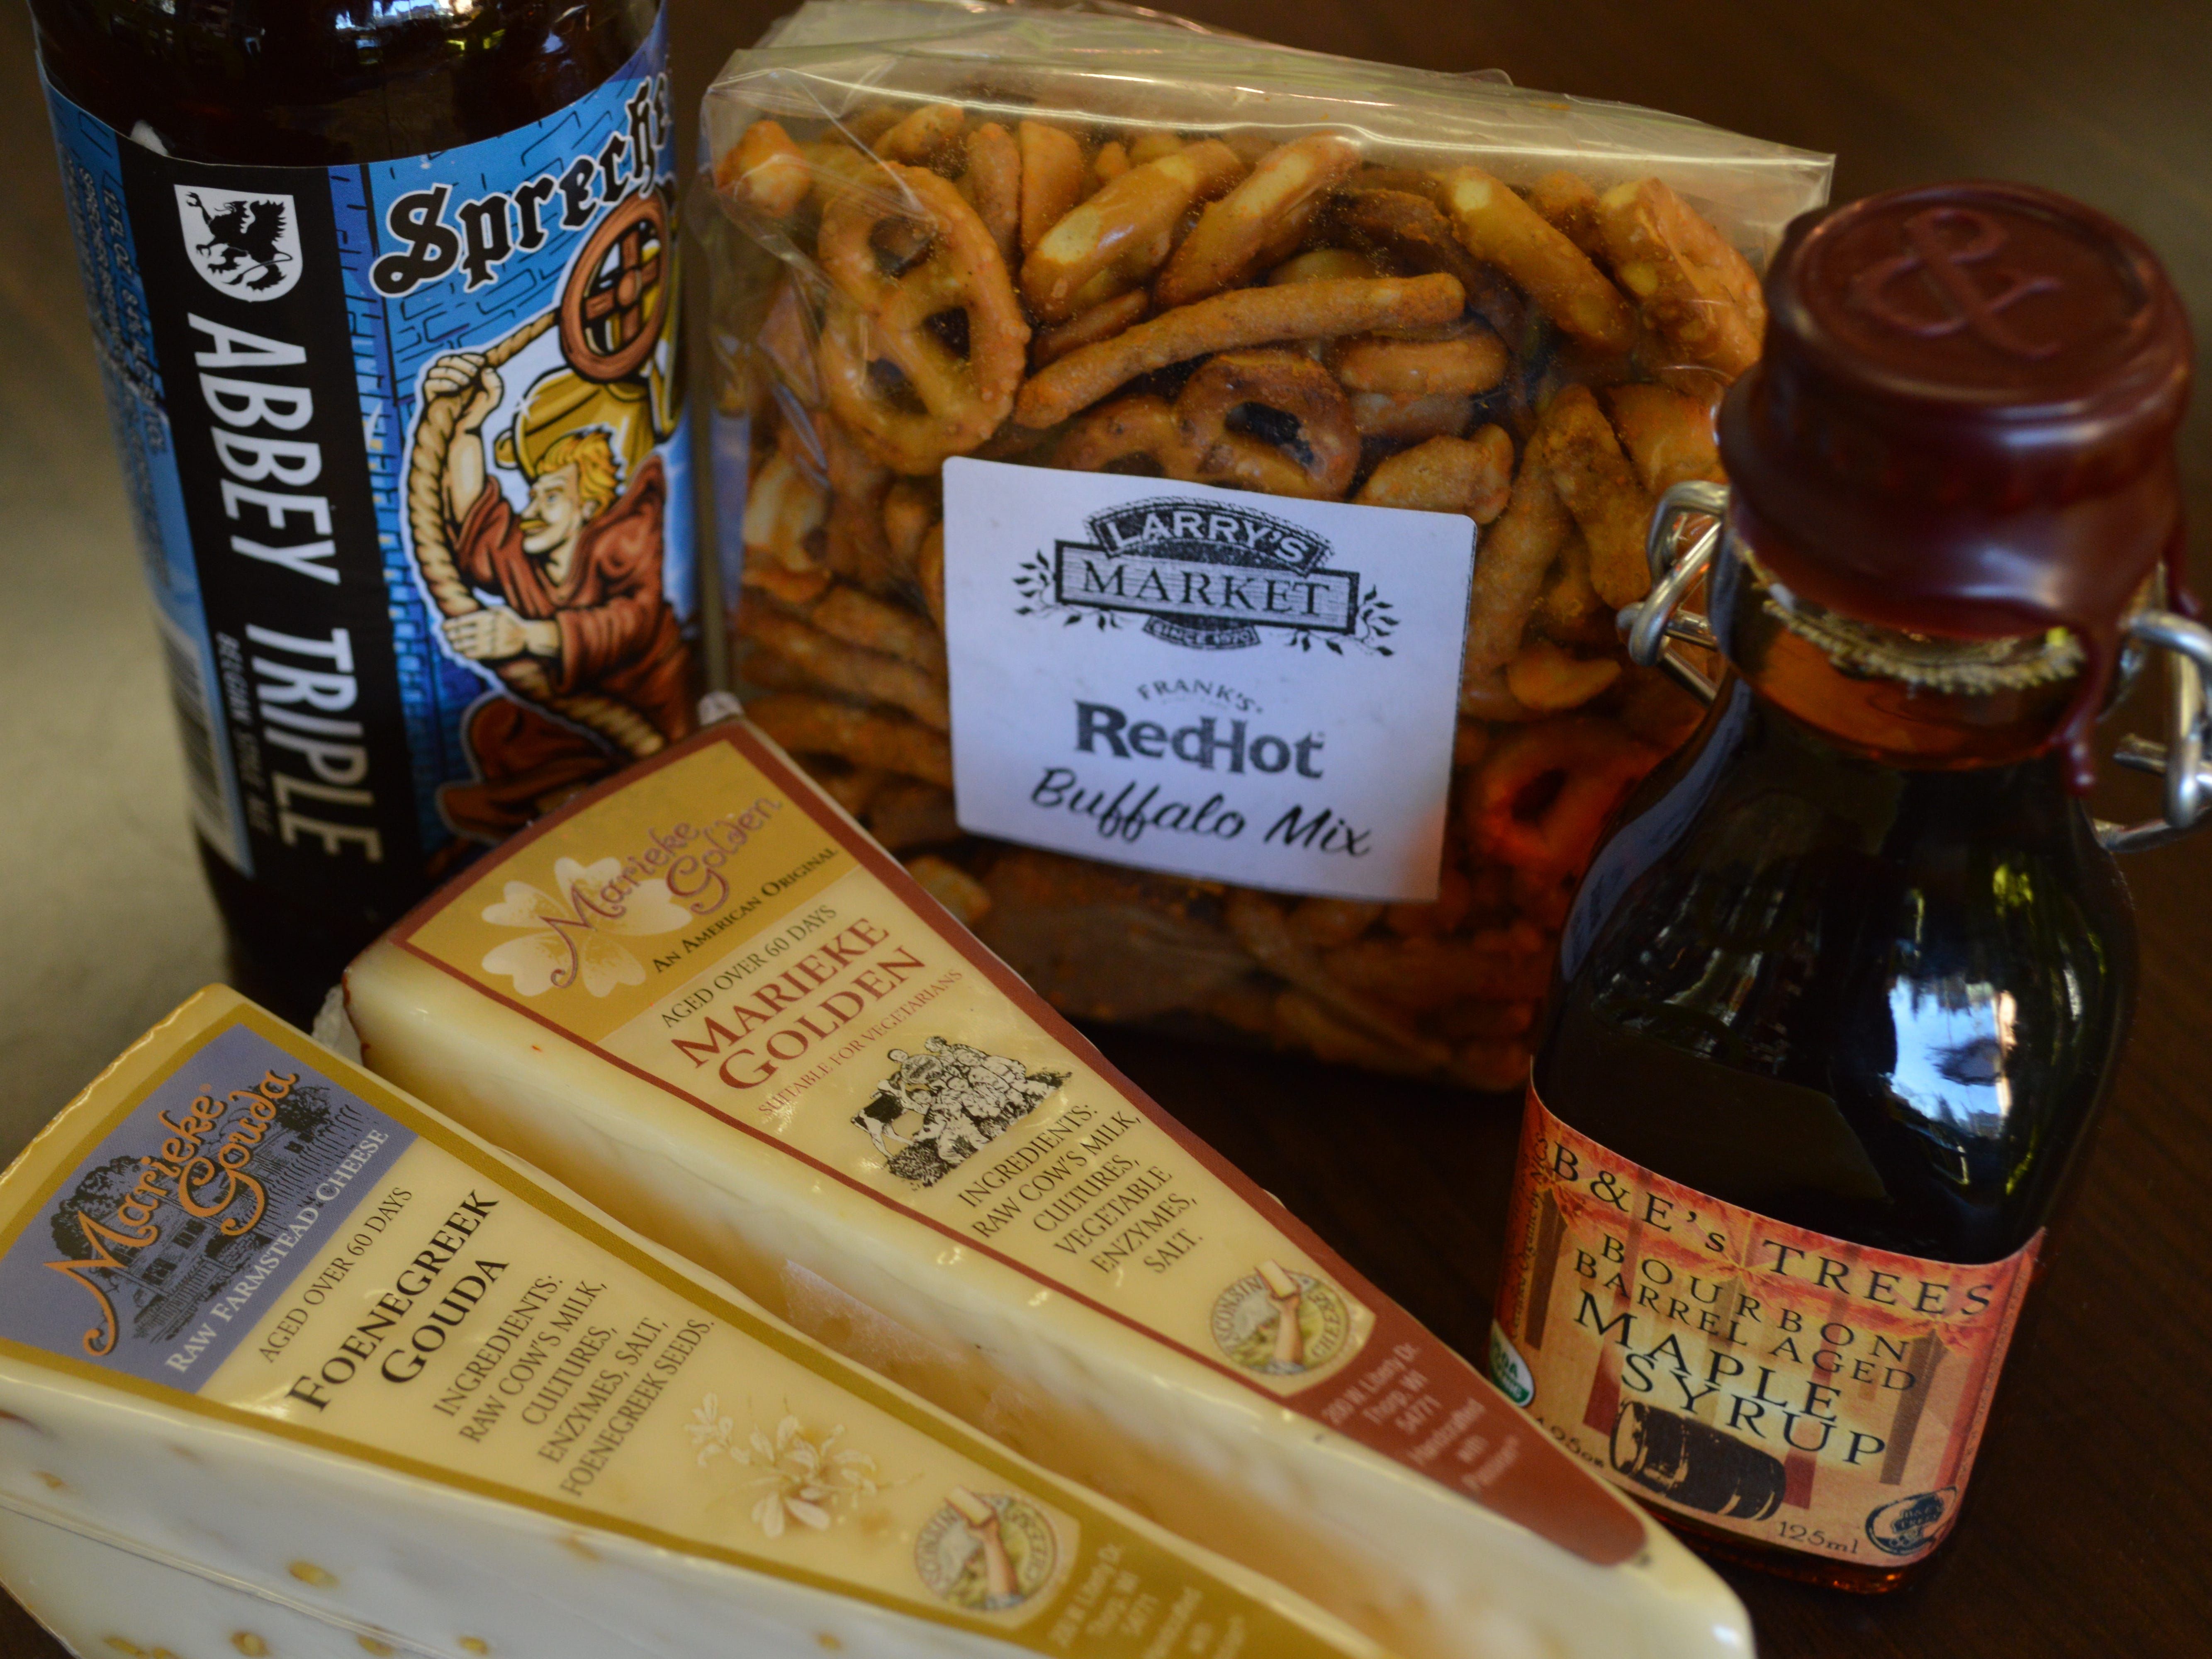 Since Goudas like Foenegreek Gouda by Marieke Gouda have richer, maltier flavors, Groh recommended pairing this kind of cheese with a beer like Sprecher Brewing Company's Abbey Triple.To bring out the cheese's sweet, maple flavor even more, he suggested drizzling it with maple syrup.